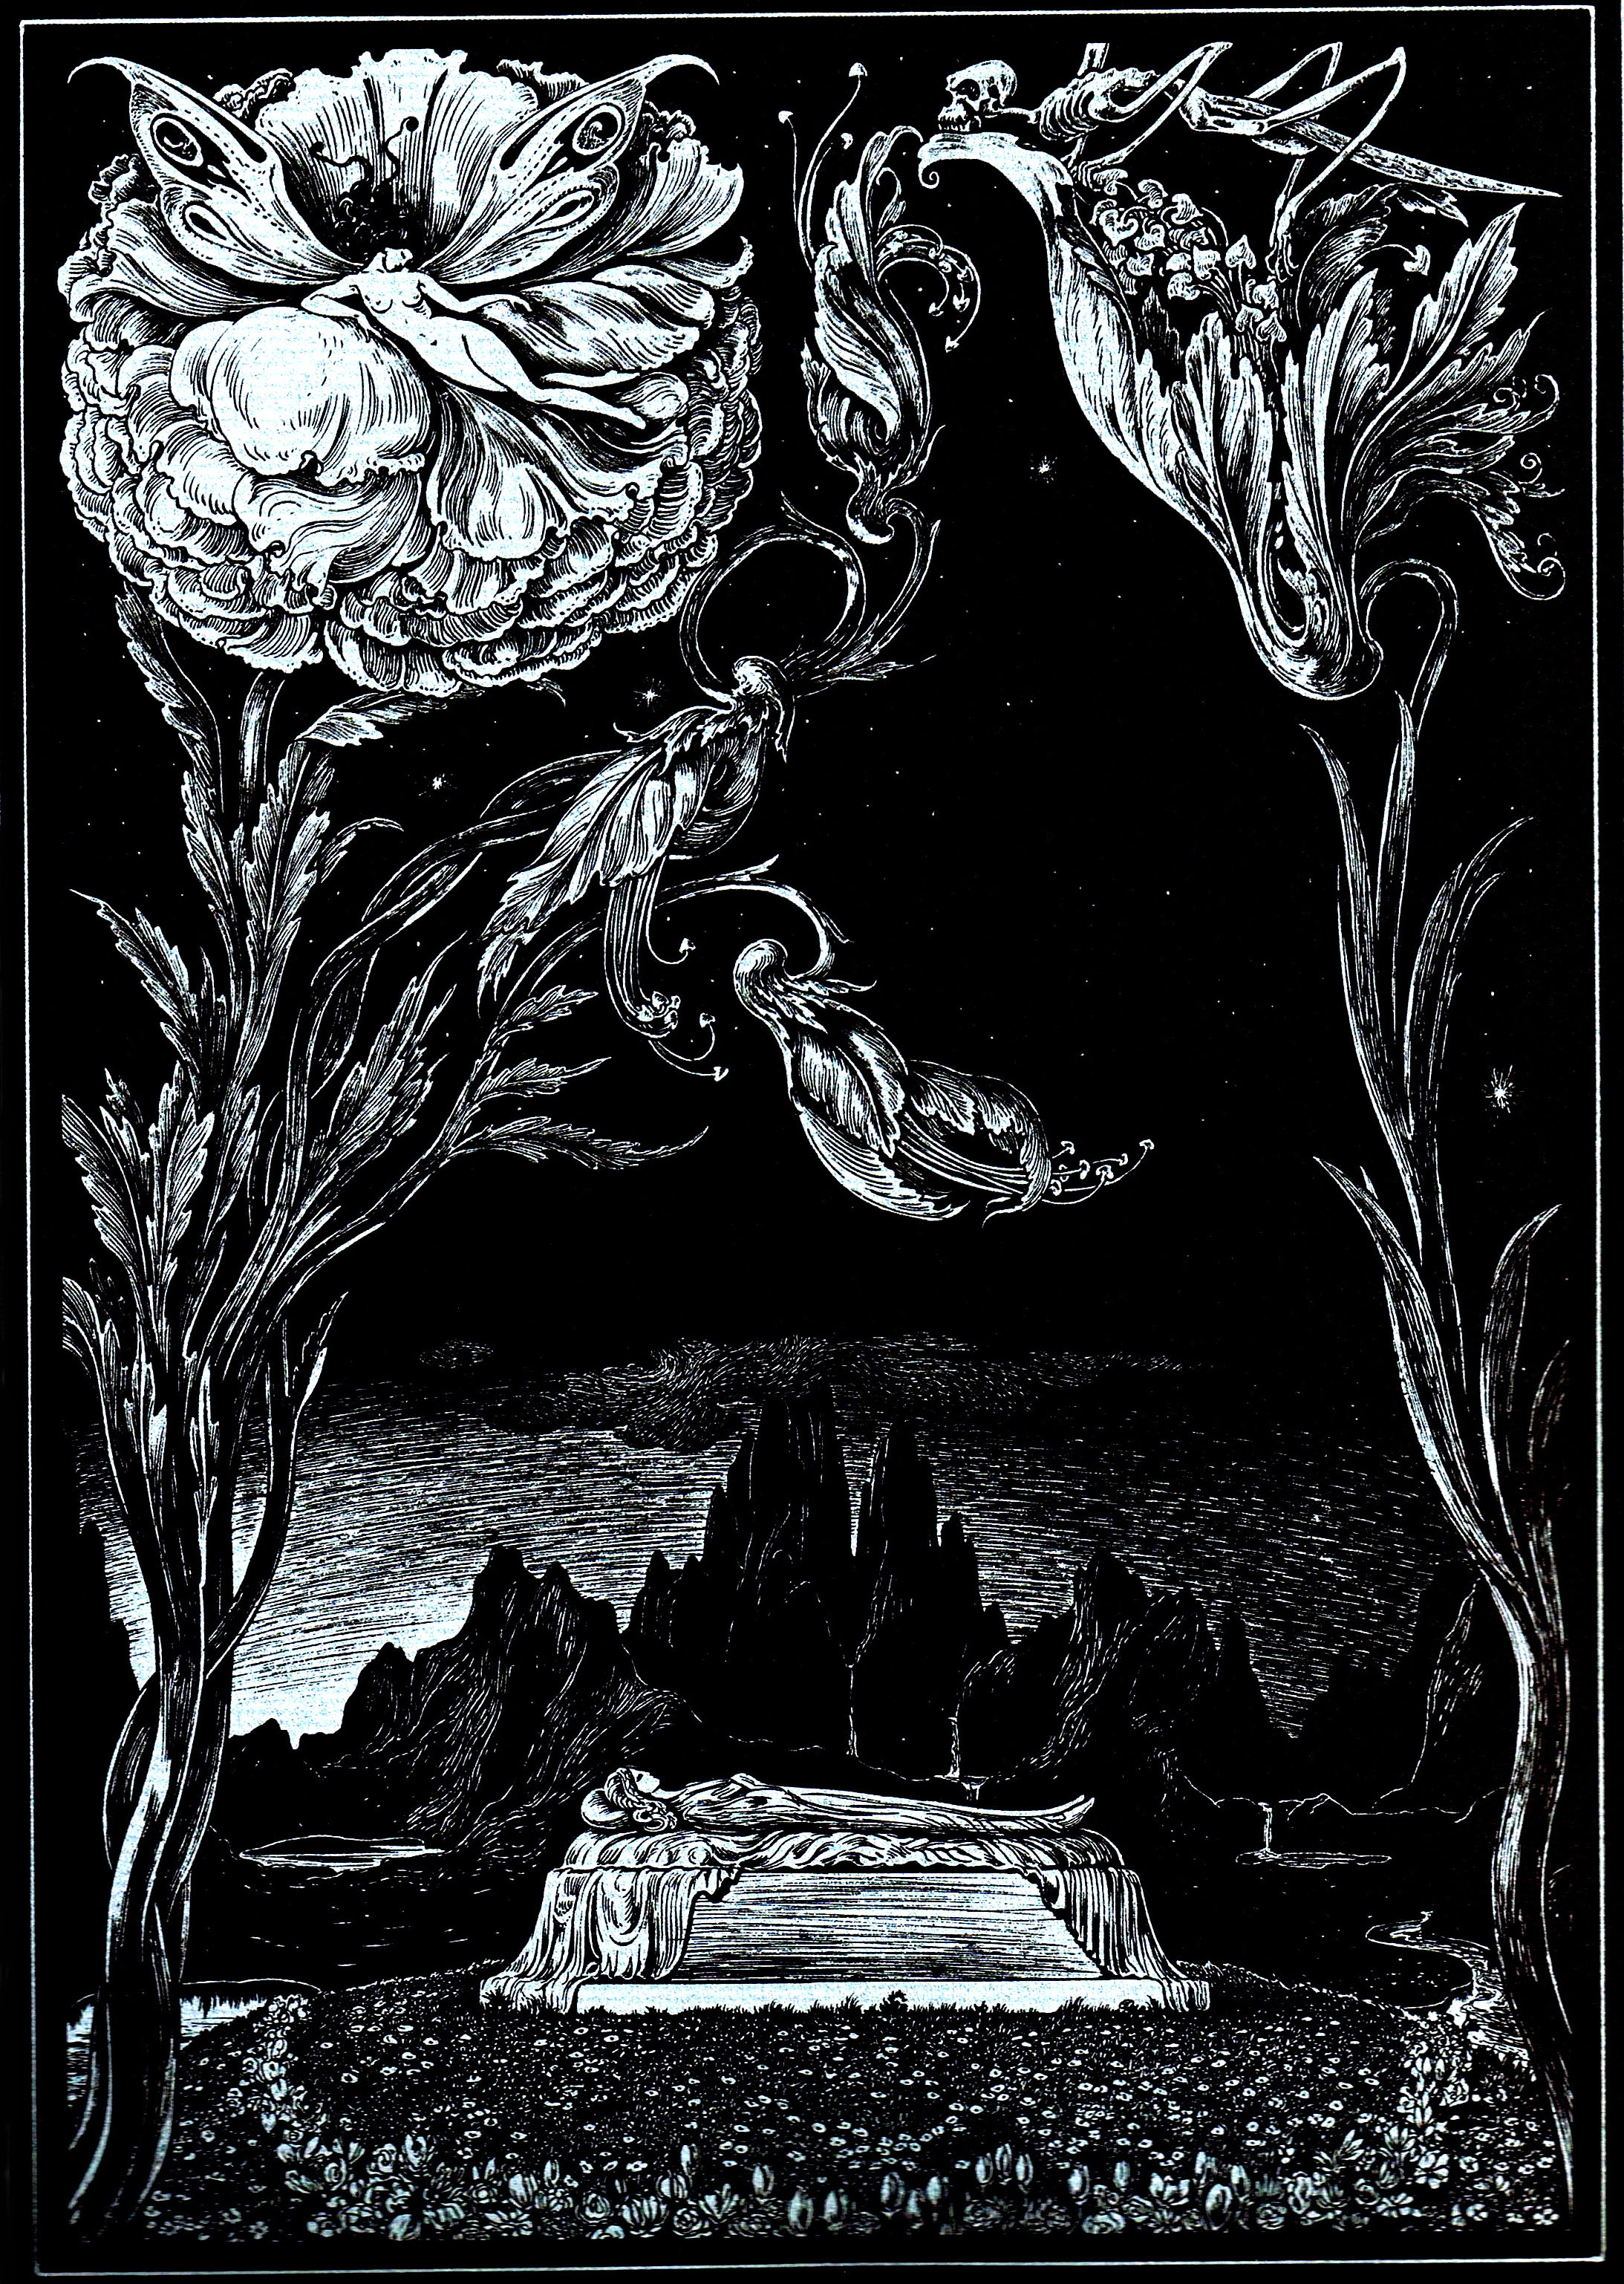 edgar allan poe illustrations - photo #5